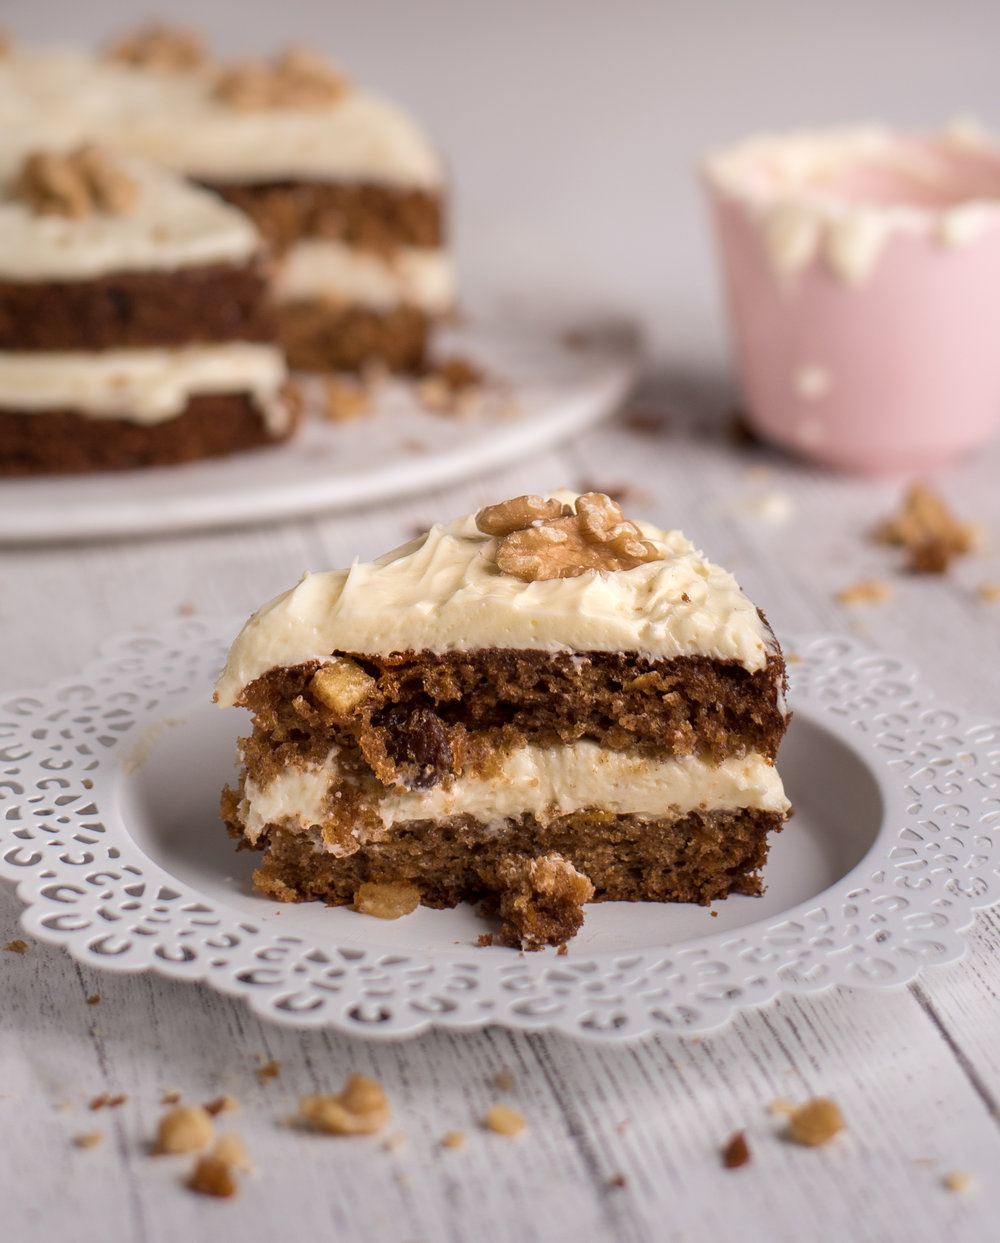 Classic Carrot Cake with a Cream Cheese Icing and Shelled Walnuts.